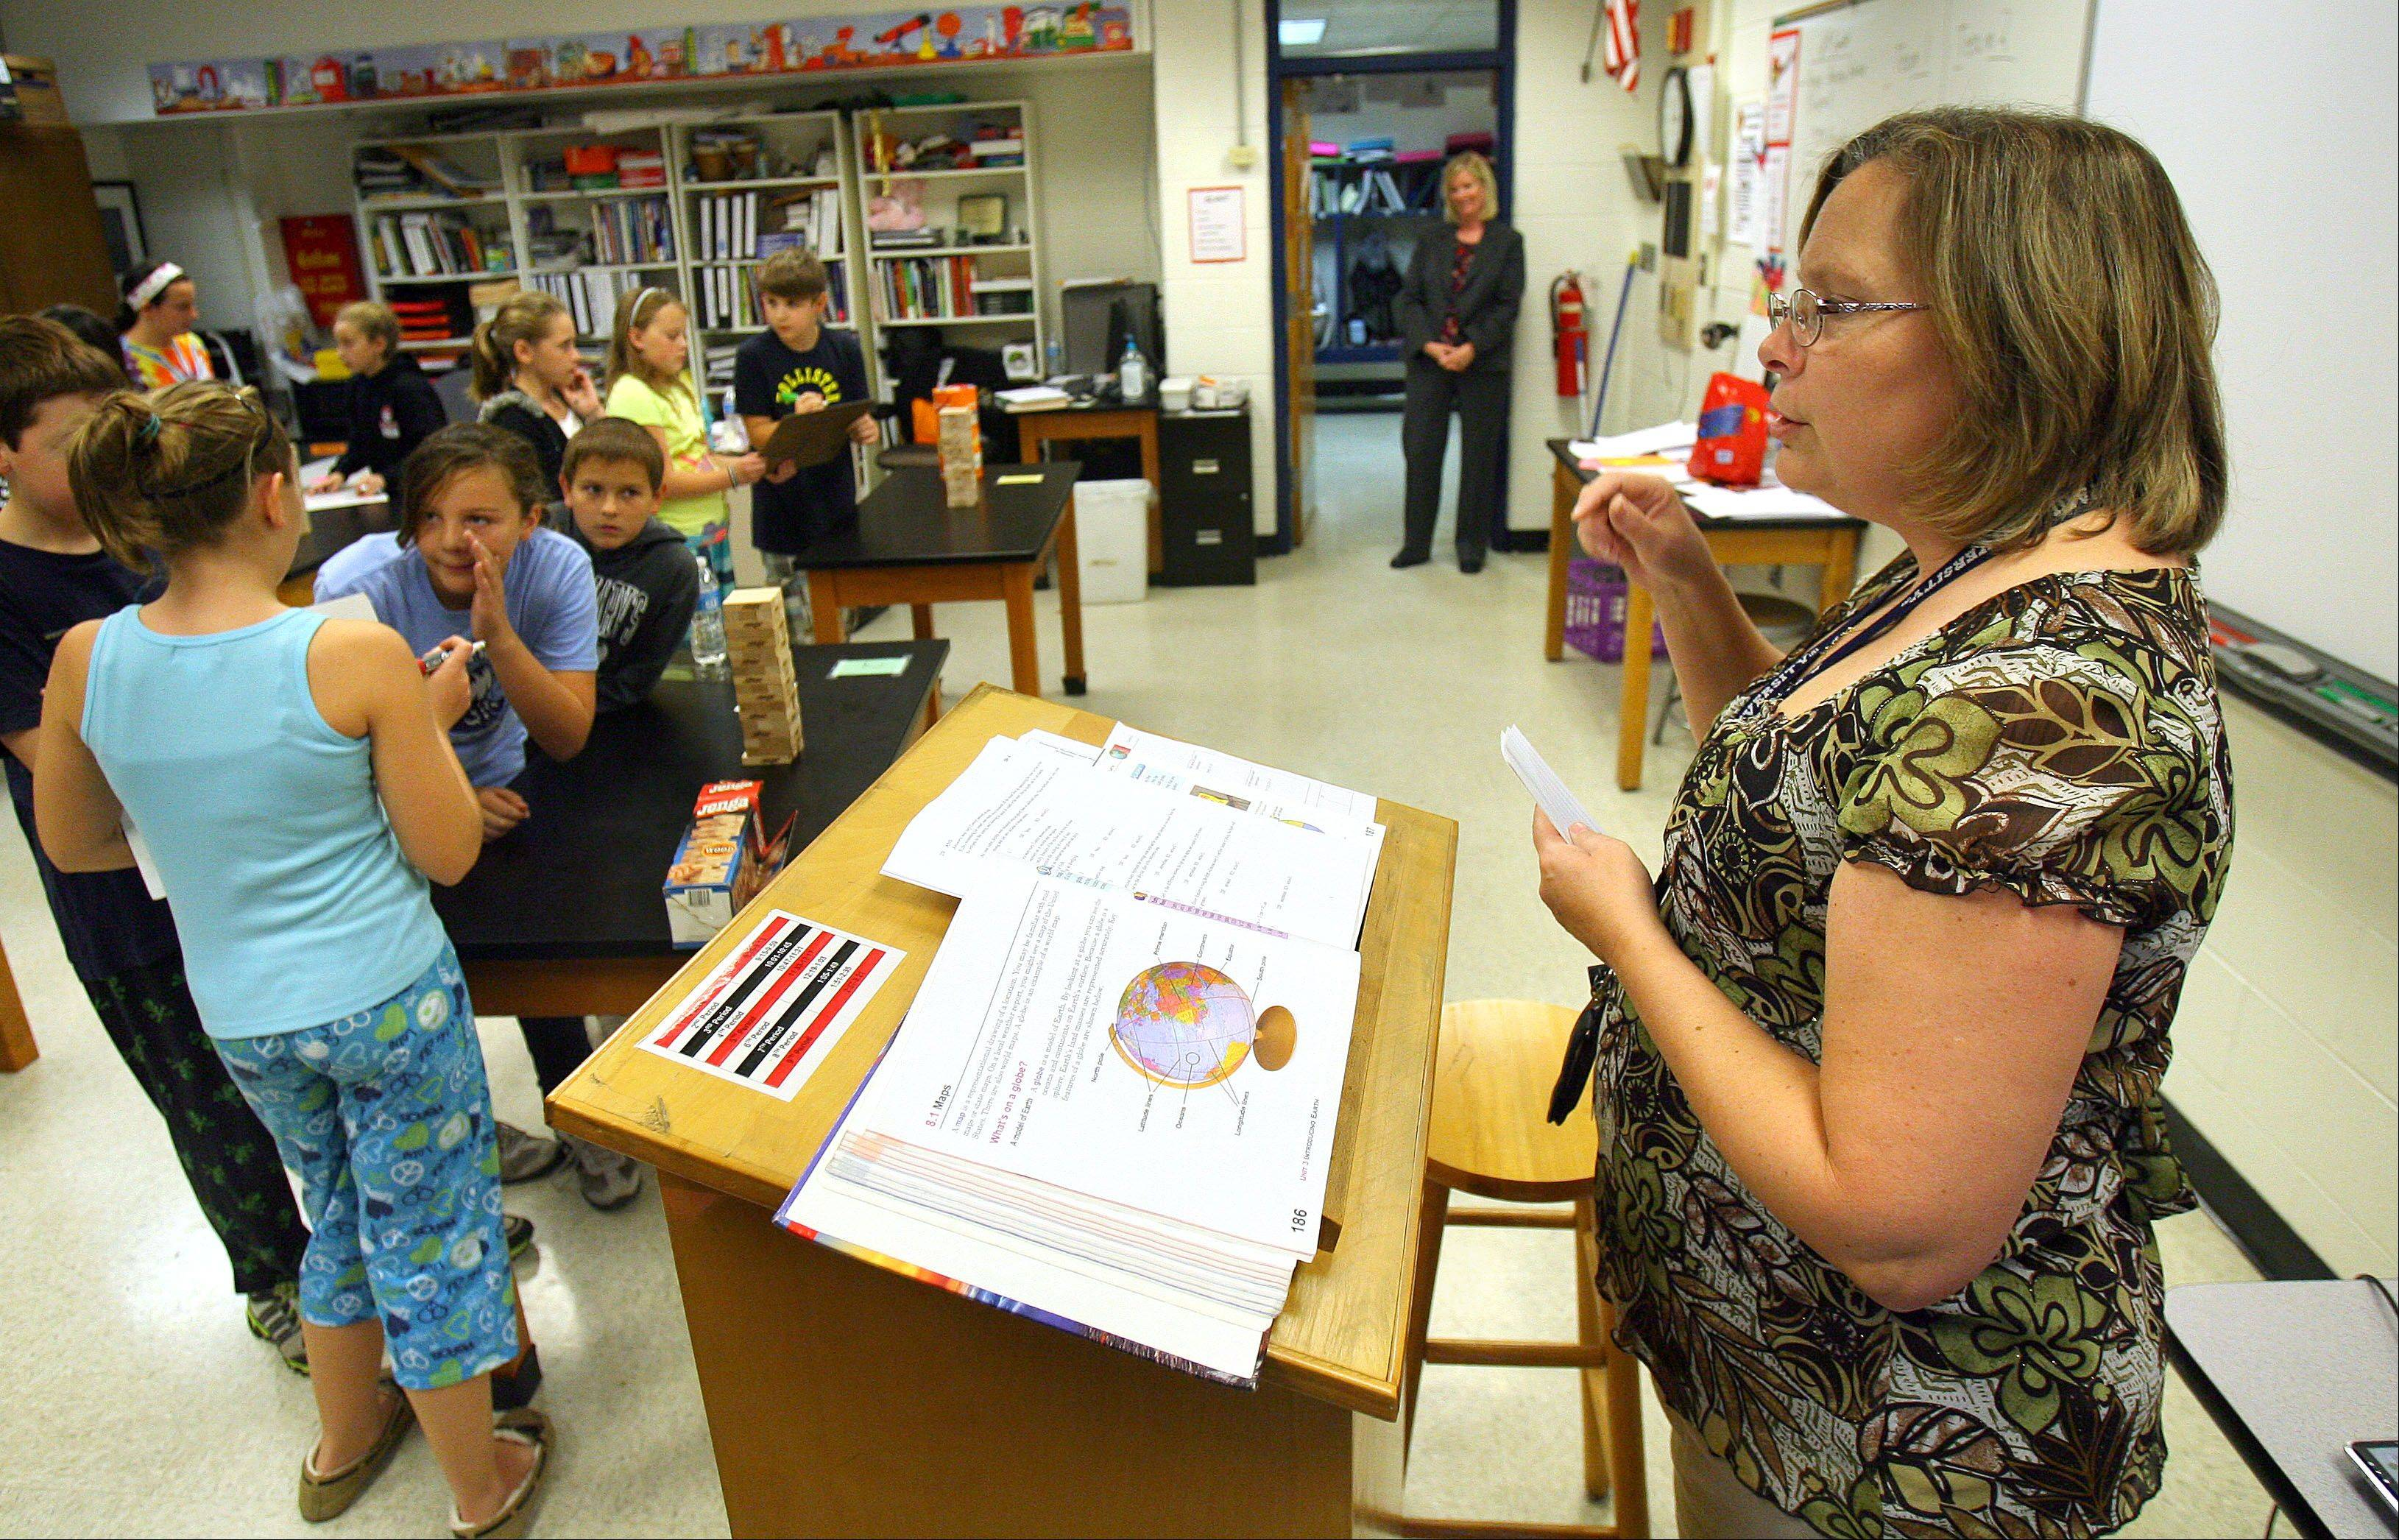 Sixth-grade science teacher Sharon Page conducts a science game at Emmons School in Antioch. Its teachers have the lowest average salaries among 91 suburban districts reviewed by the Daily Herald.